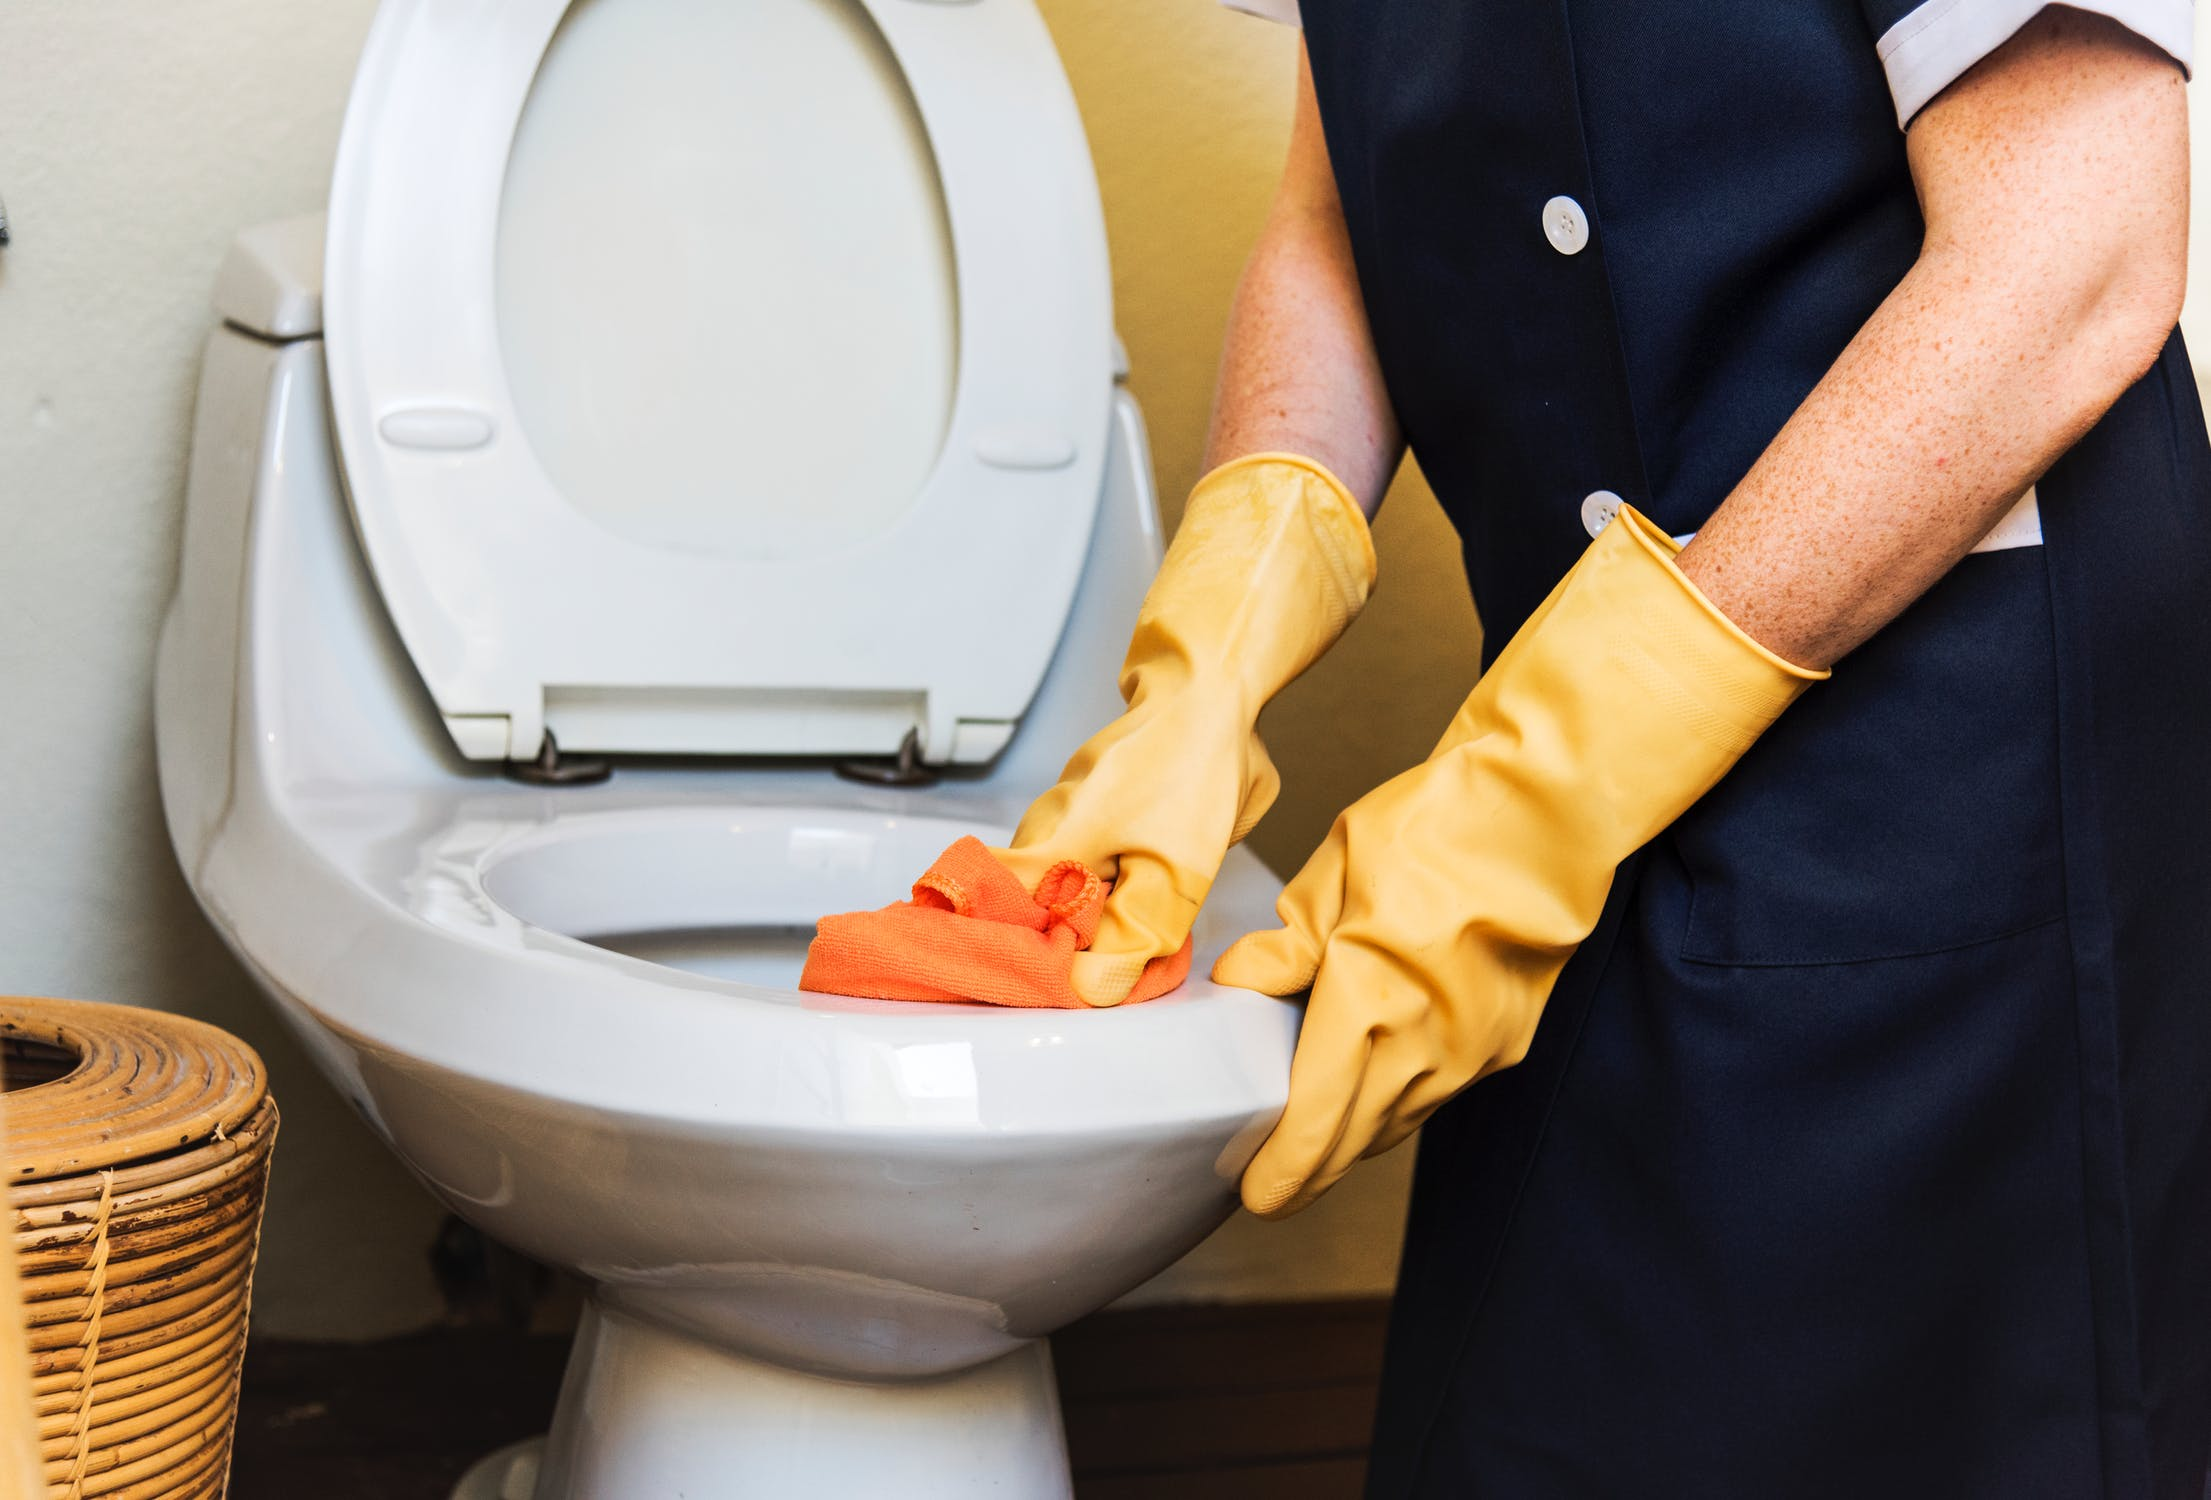 cleaning toilet with wearing yellow gloves